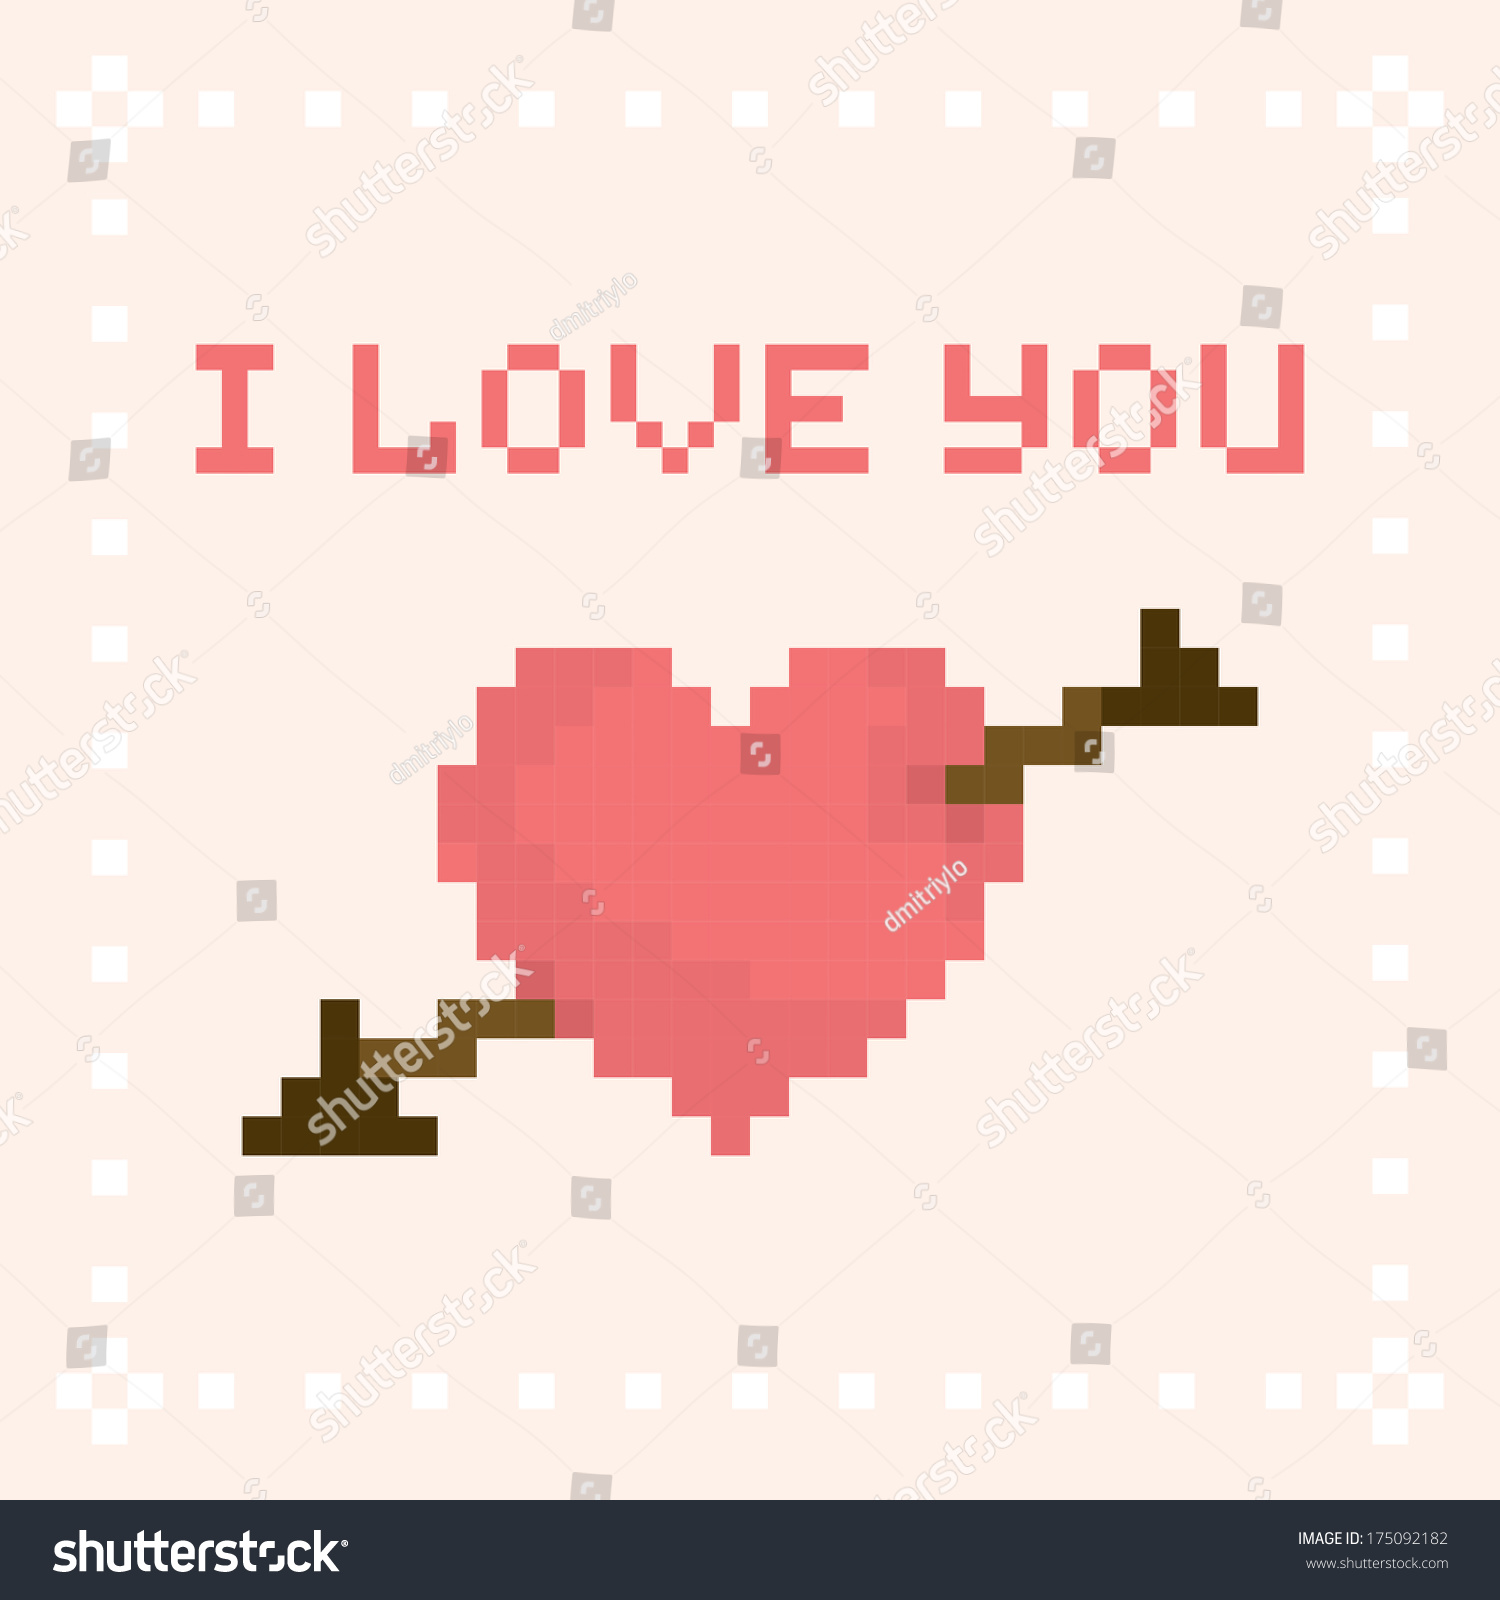 pixel art i love you valentines stock vector 175092182 shutterstock. Black Bedroom Furniture Sets. Home Design Ideas